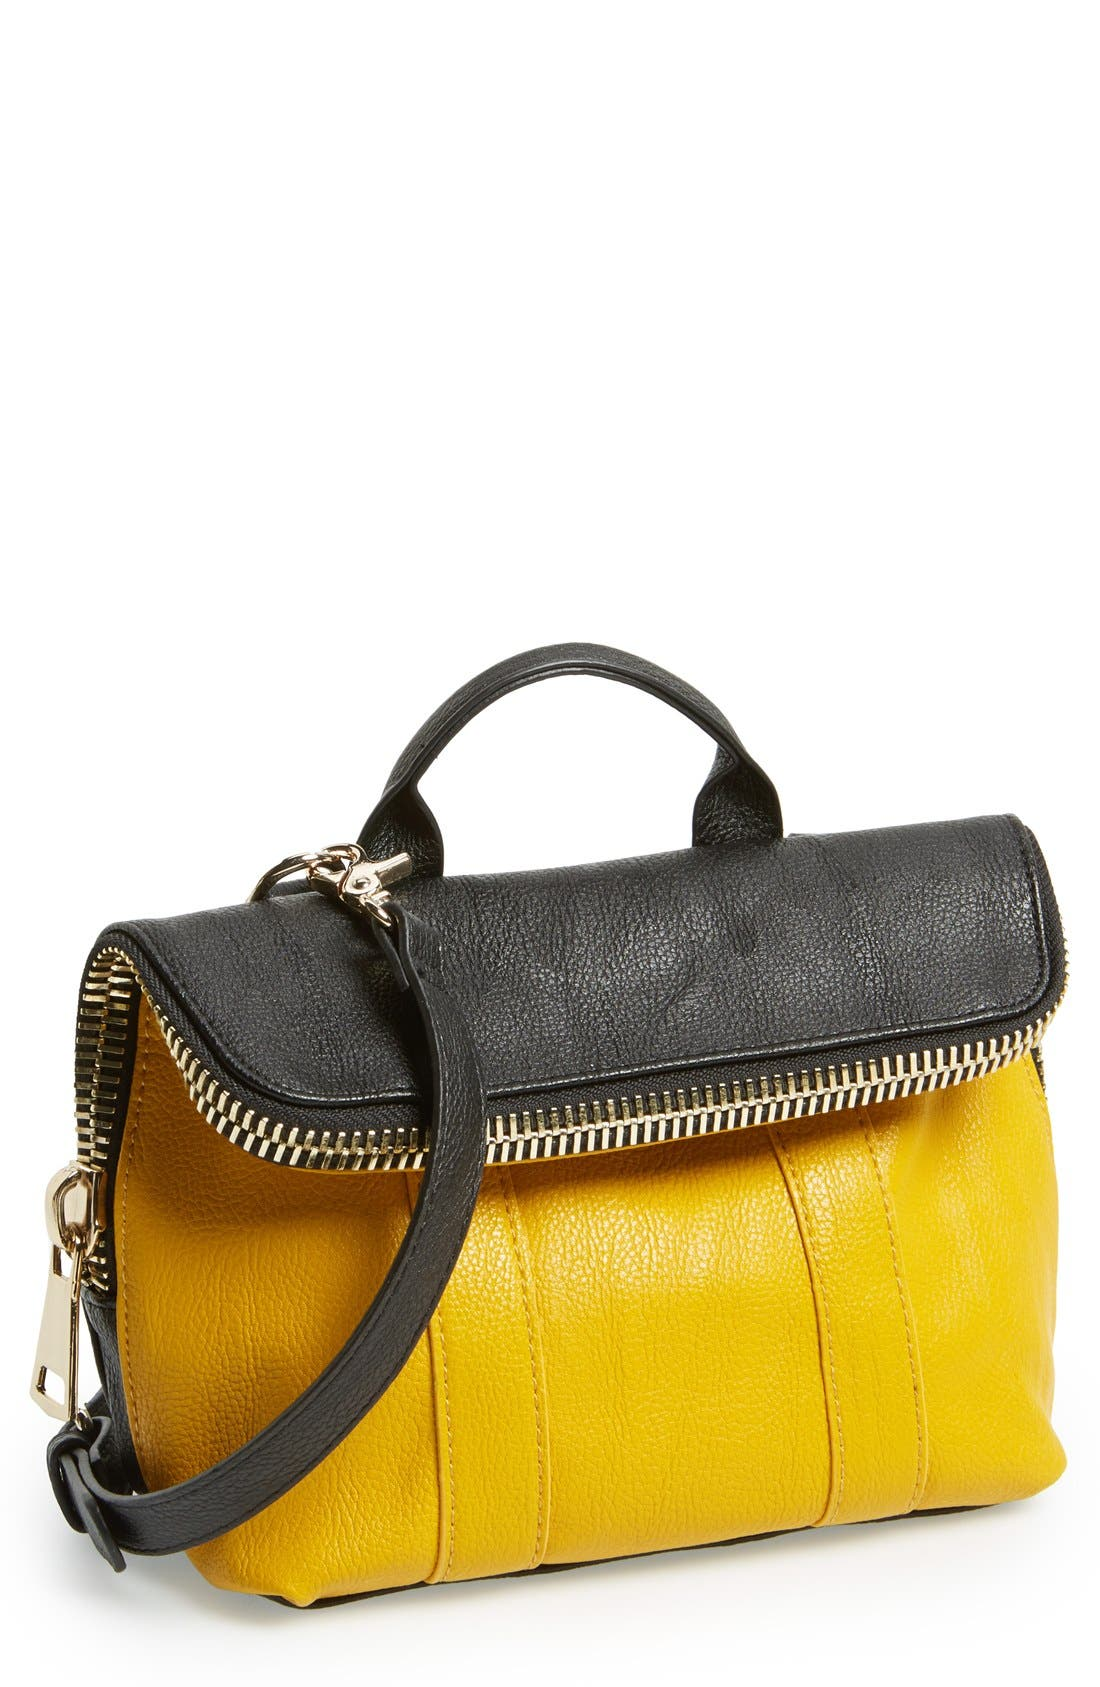 Main Image - POVERTY FLATS by rian 'Super' Zip Top Foldover Crossbody Bag